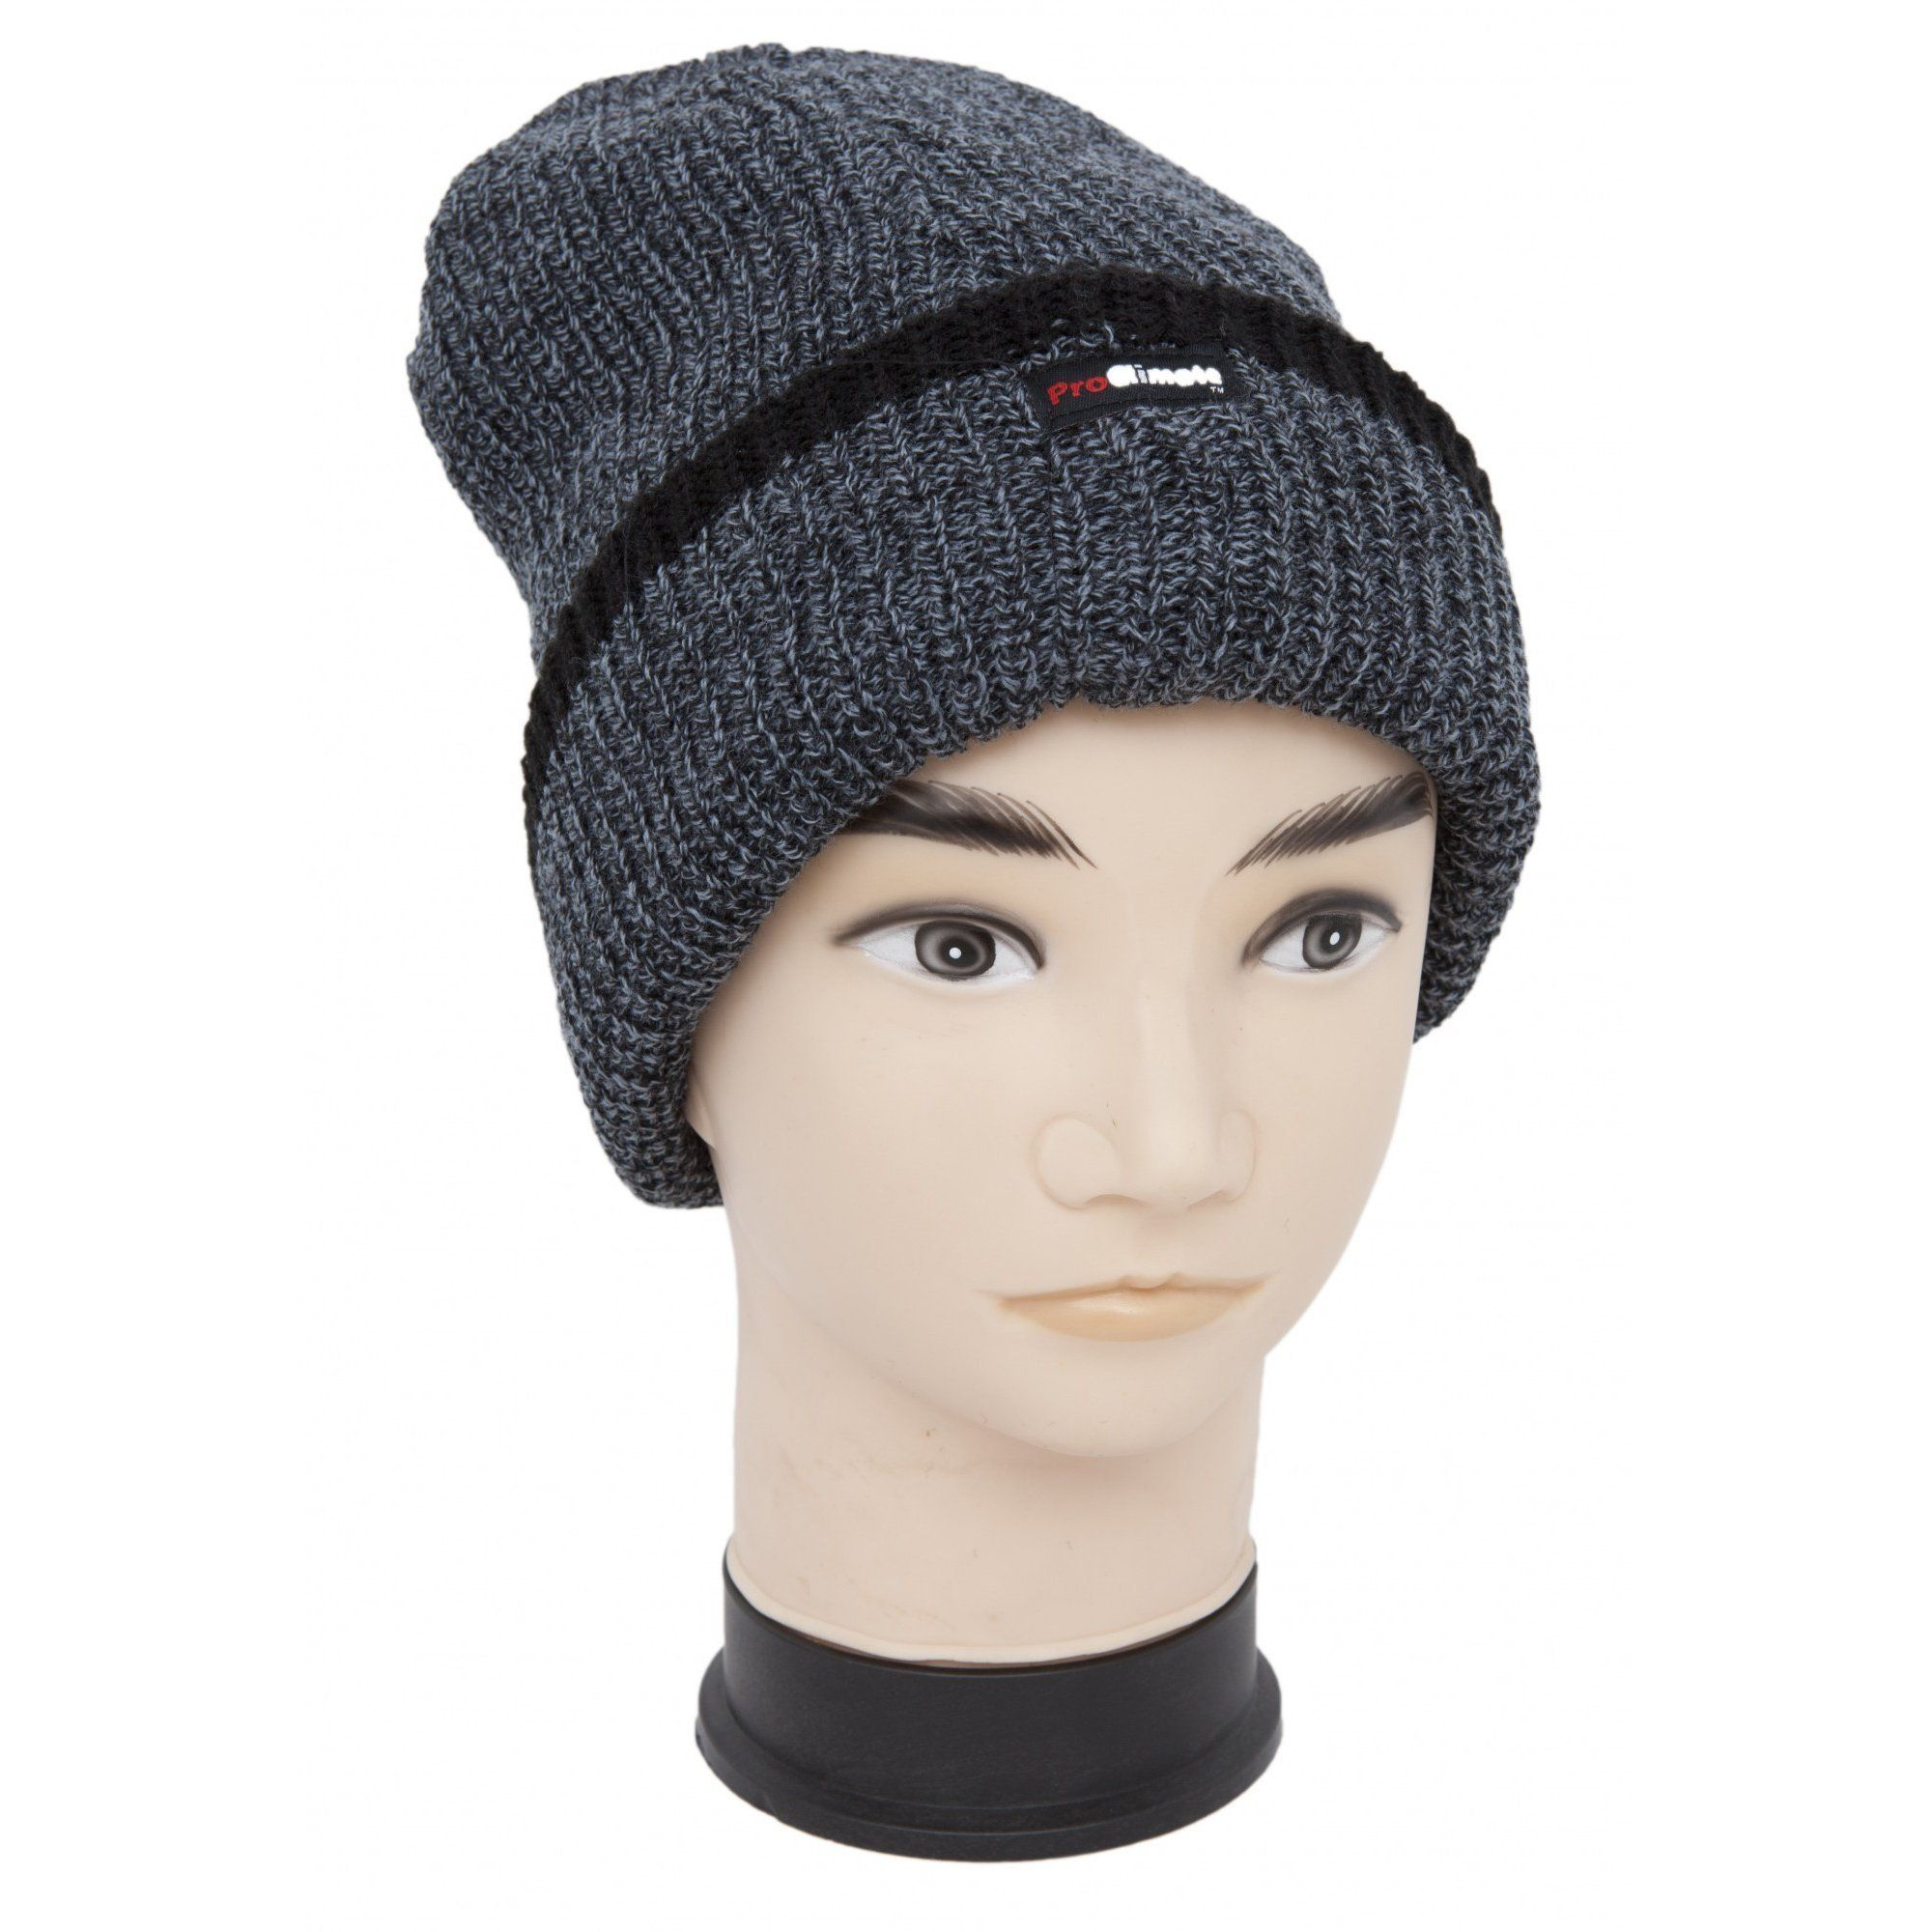 204e89a274b Mens Thinsulate Knitted Thermal Heavy Winter Ski Hat